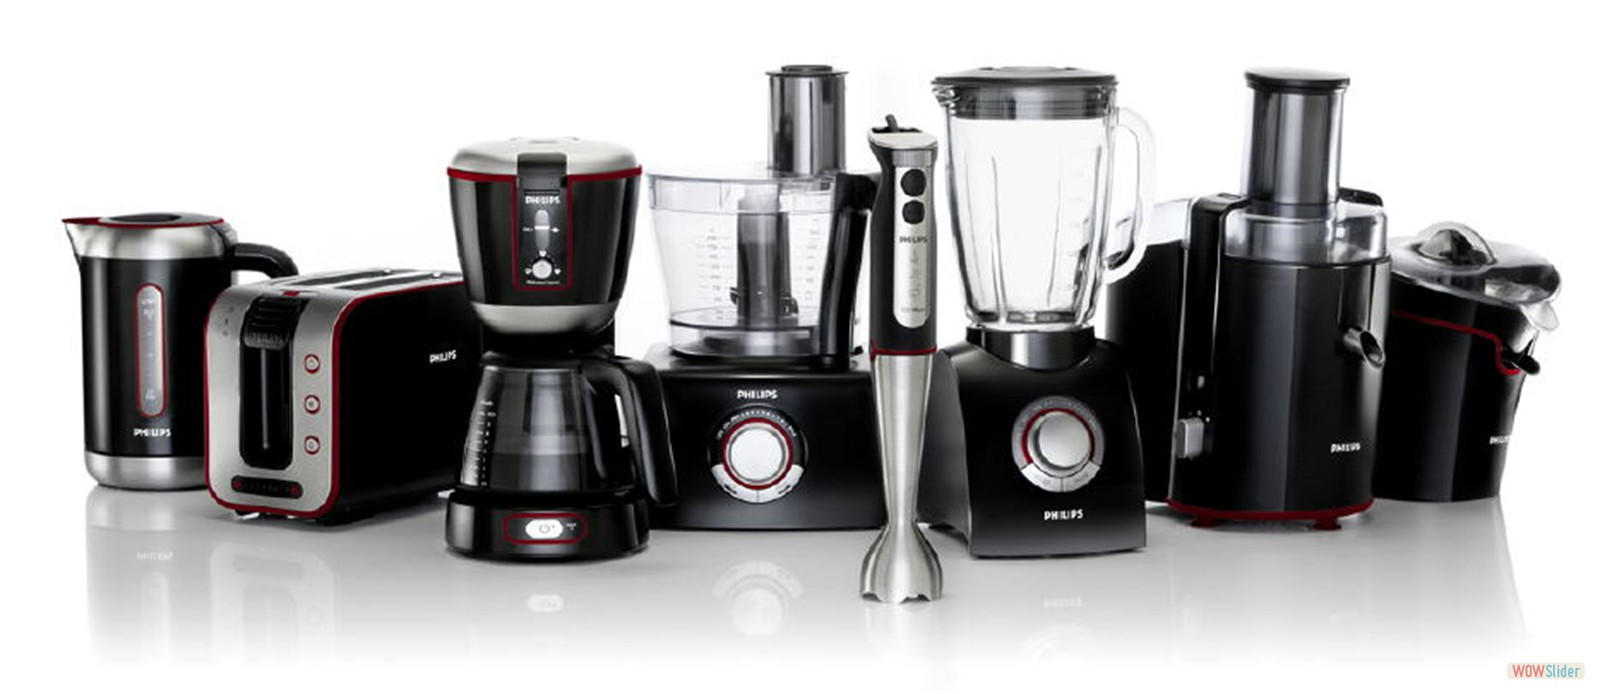 Small Kitchen Appliances - Deals & Discounts | Groupon